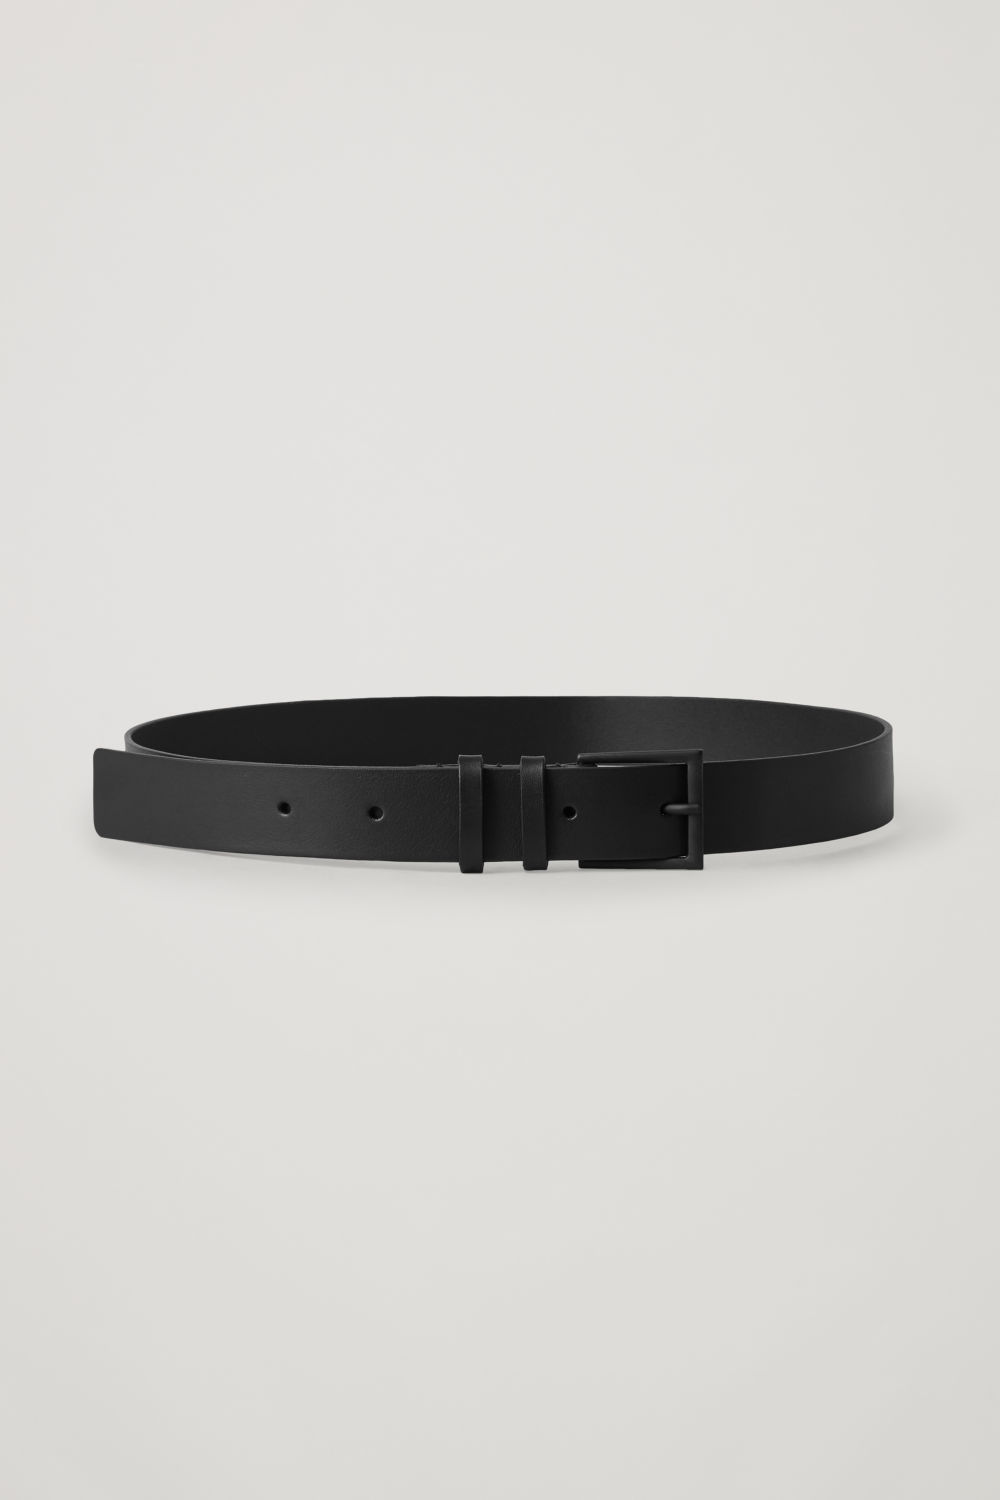 코스 COS CLASSIC LEATHER BELT,Black